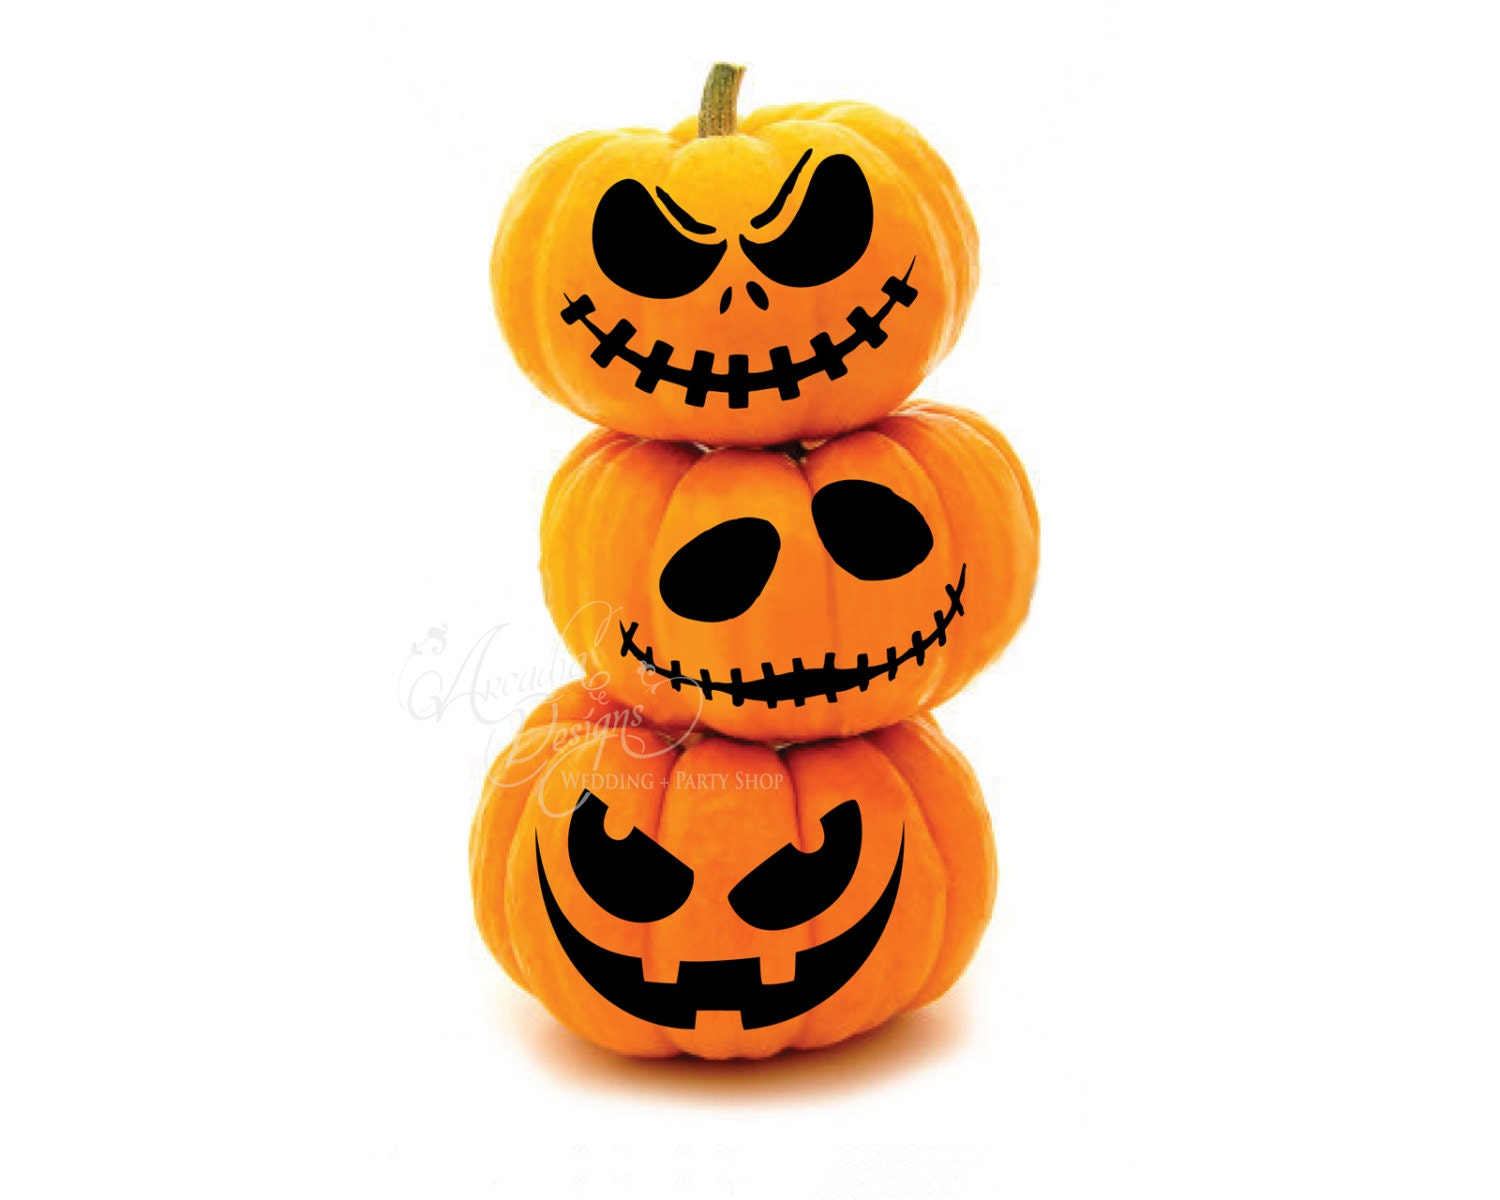 Printable Halloween Pumpkin Carving Pattern Stencil PDF Scary